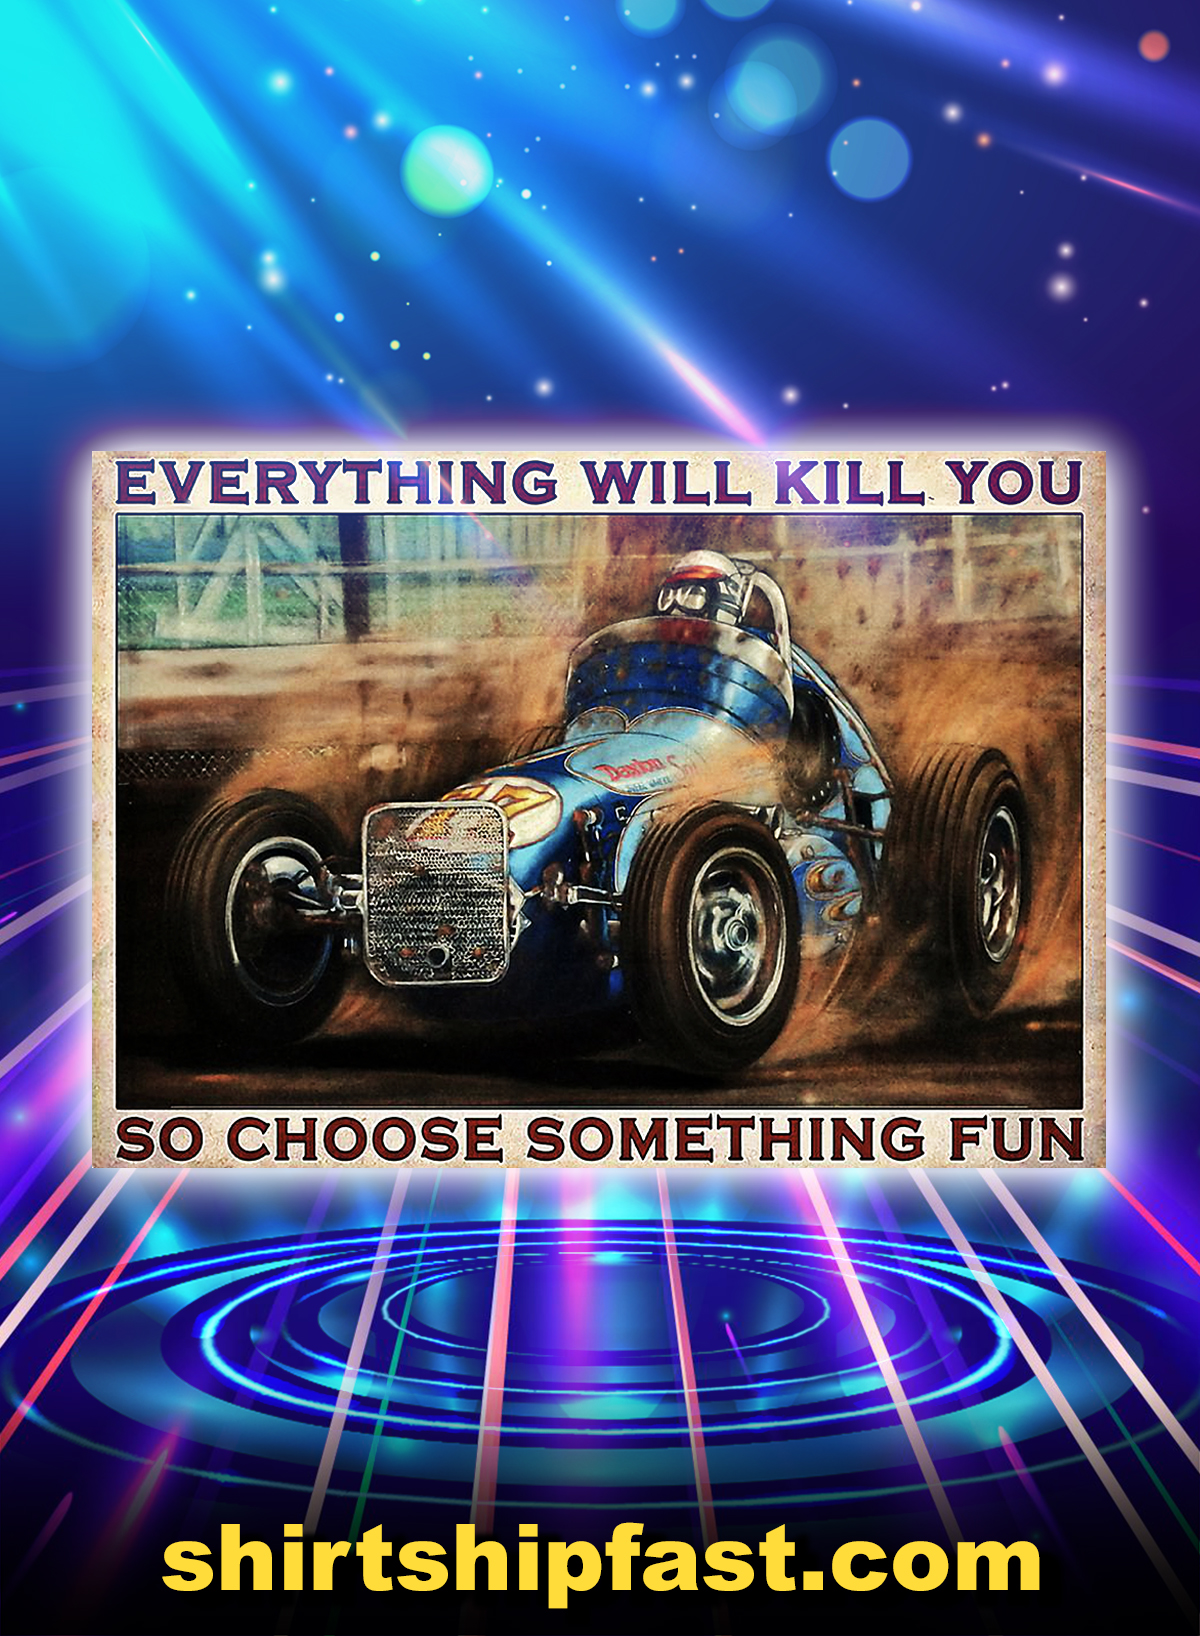 Dirt track everything will kill you so choose something fun poster - A4